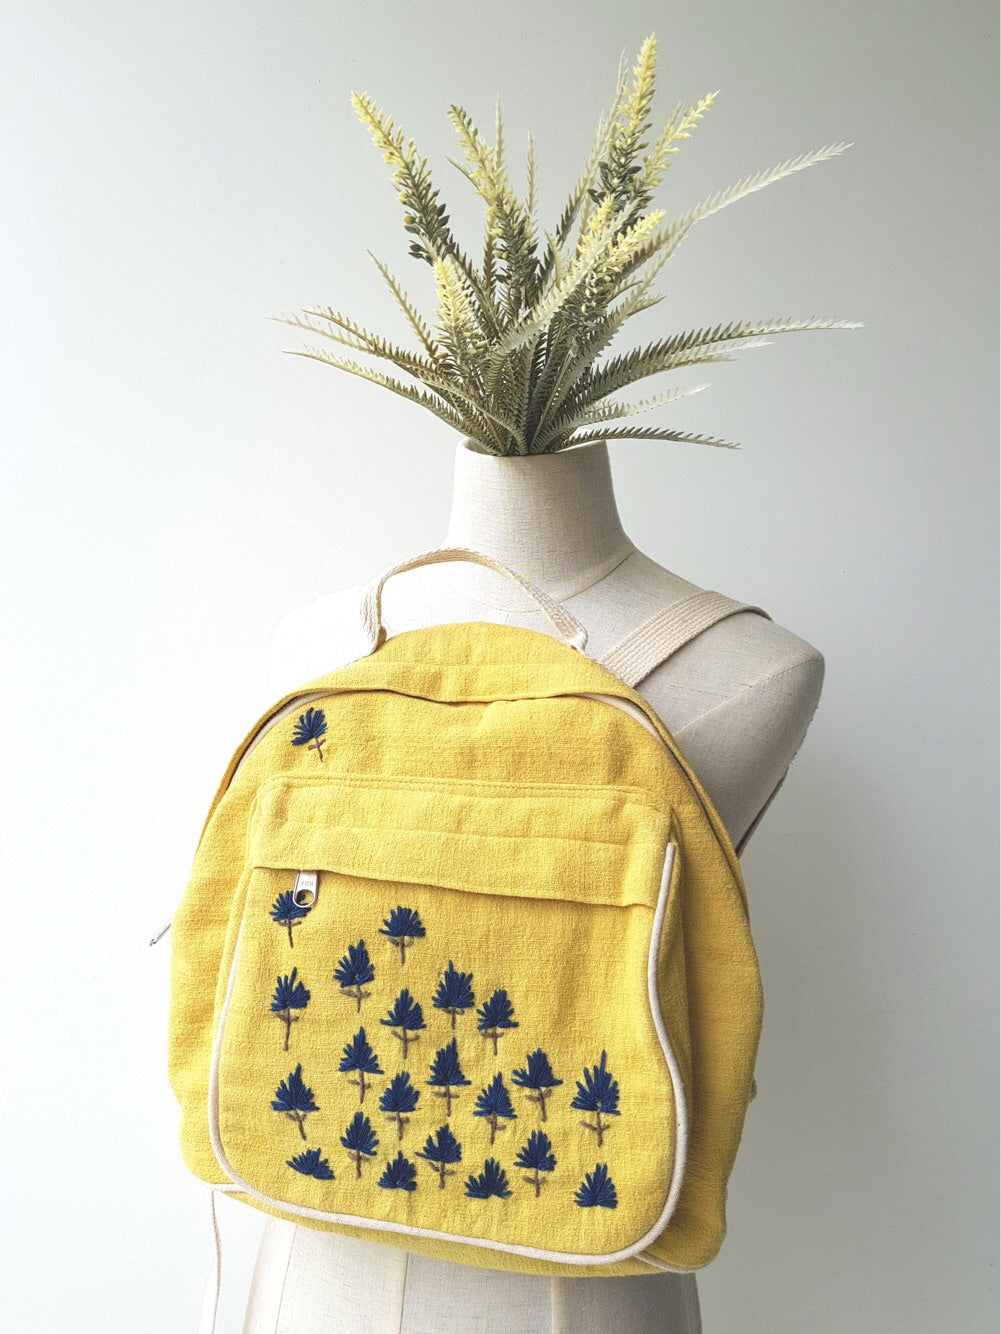 Nami Hand Embroidered Bagpack (Yellow Fabric w Blue Stitches)